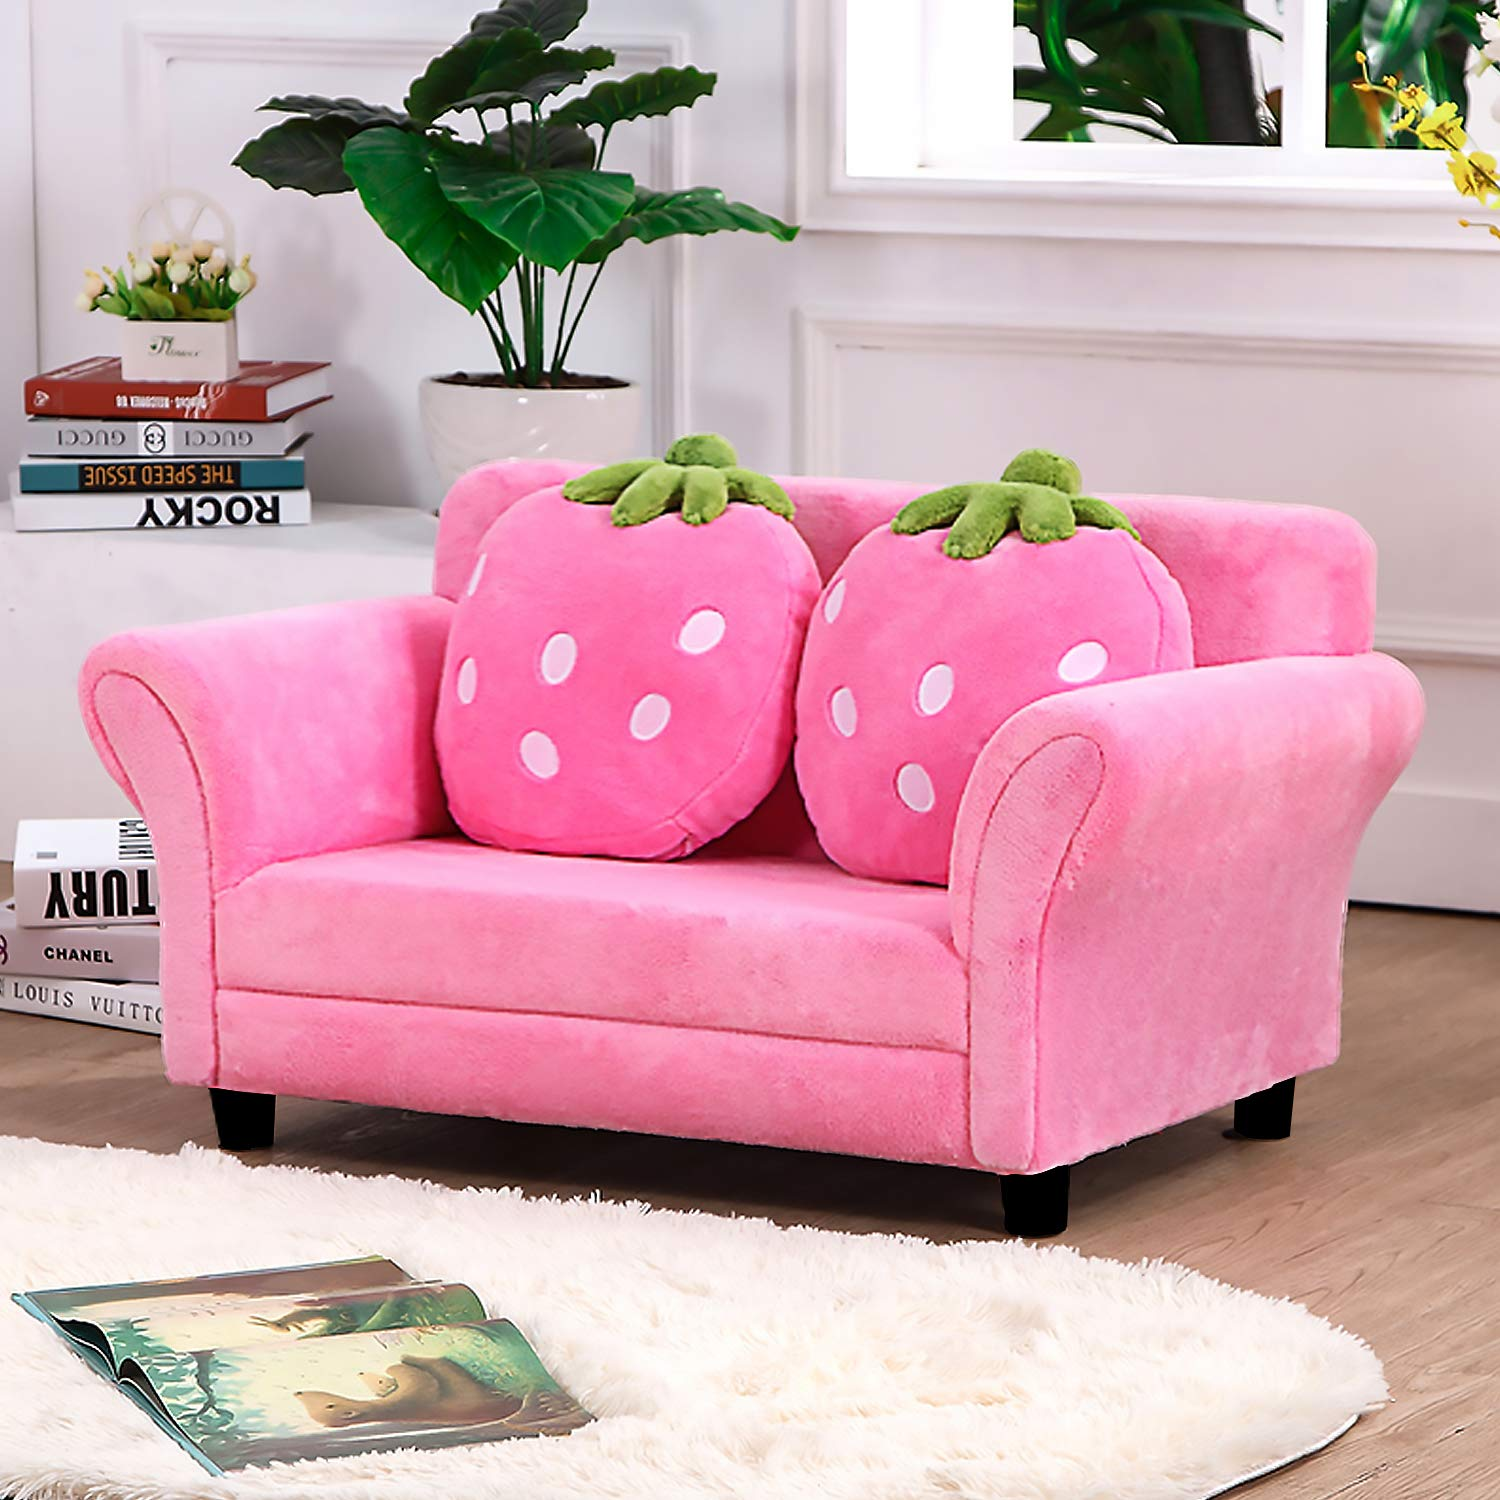 Children Sofa Kids Couch with Sturdy Wood Armrest Chair Upholstered Living Room Furniture Lounge Bed with Two Strawberry Pillows Favciuove